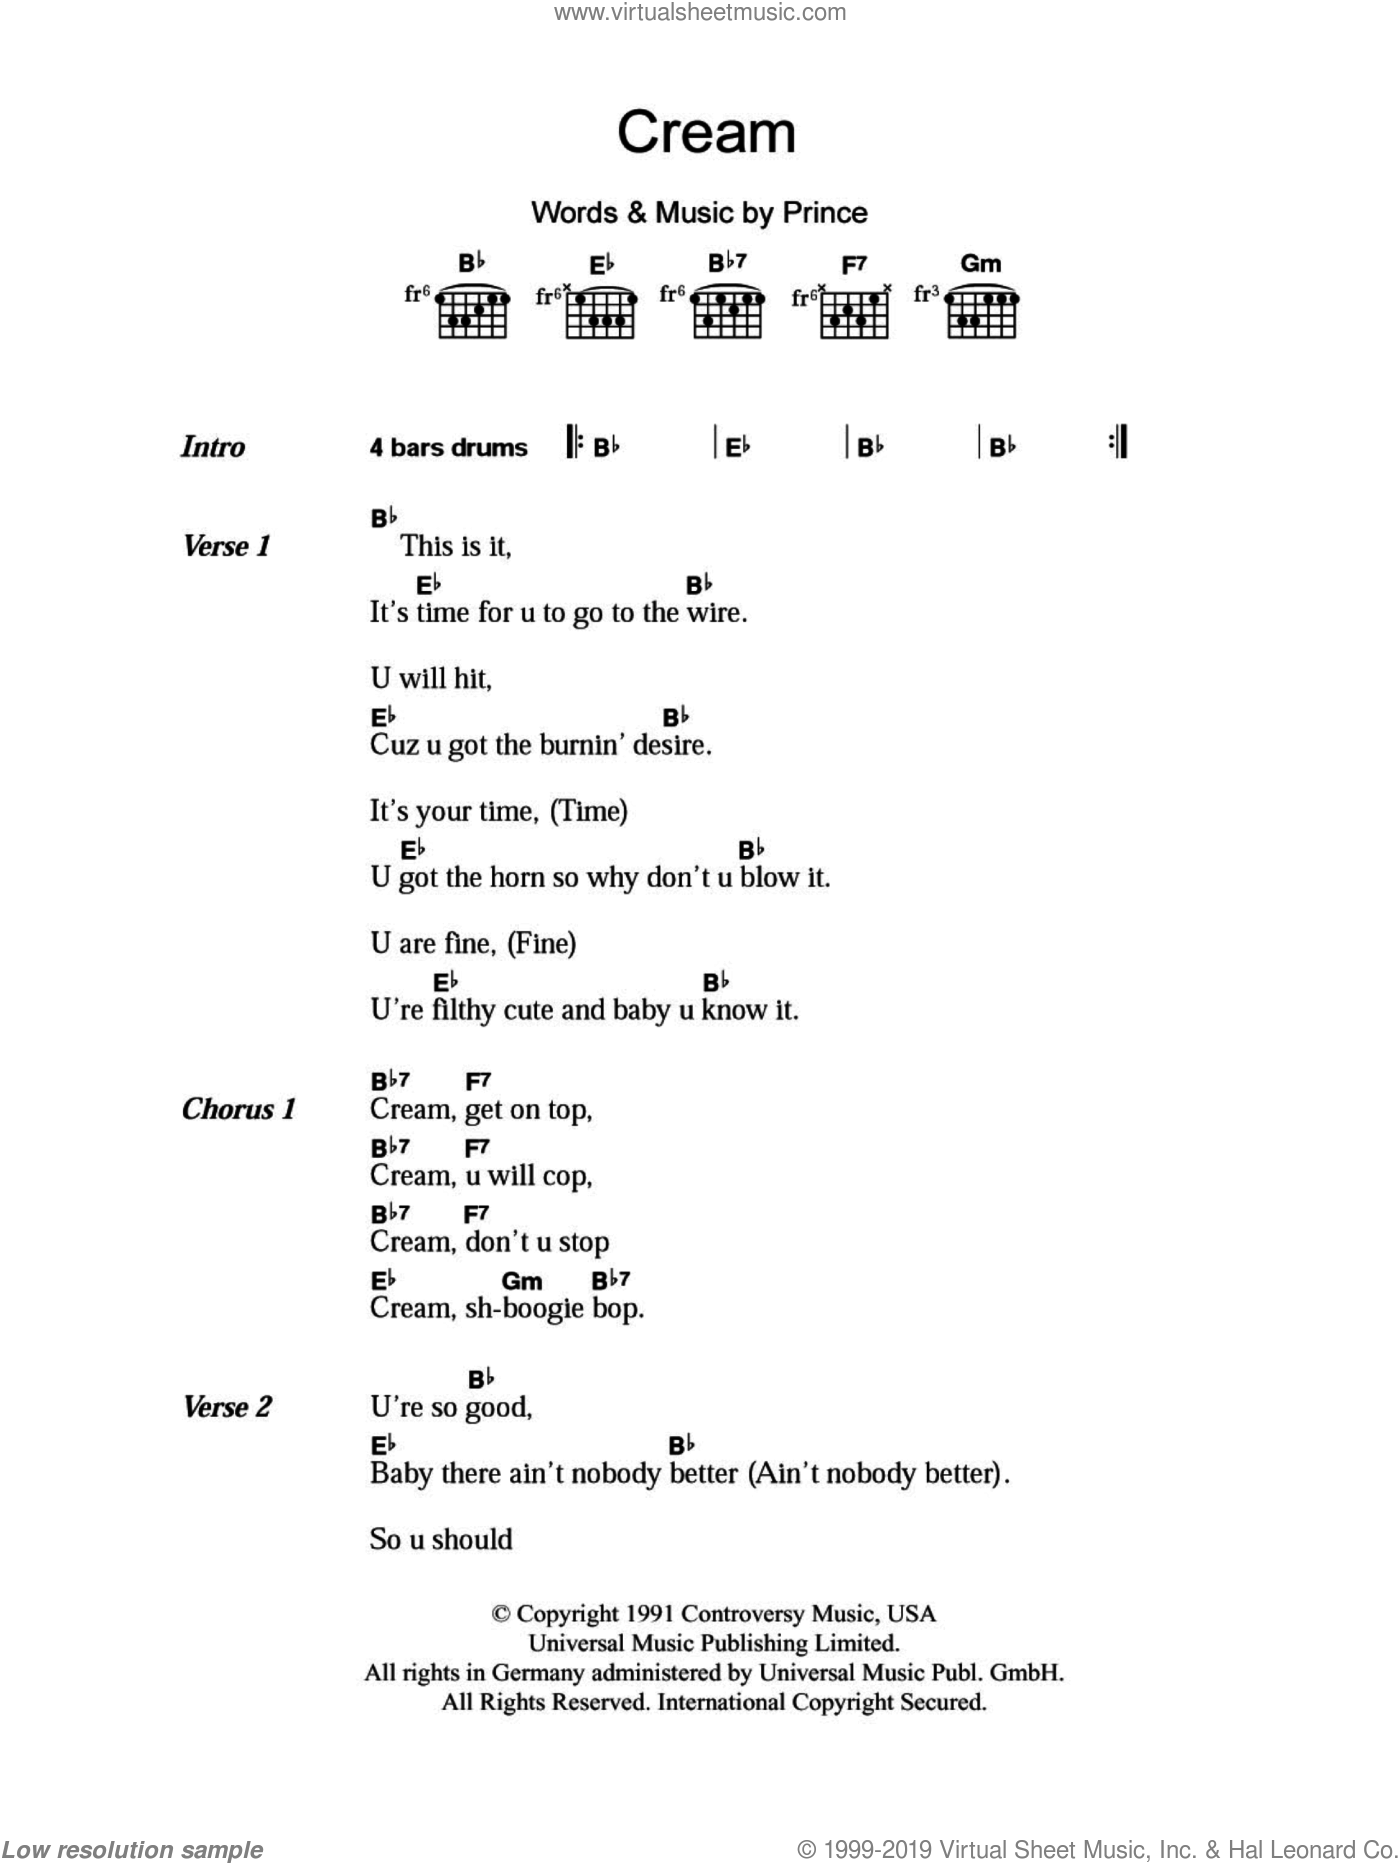 Prince - Cream sheet music for guitar (chords) [PDF]